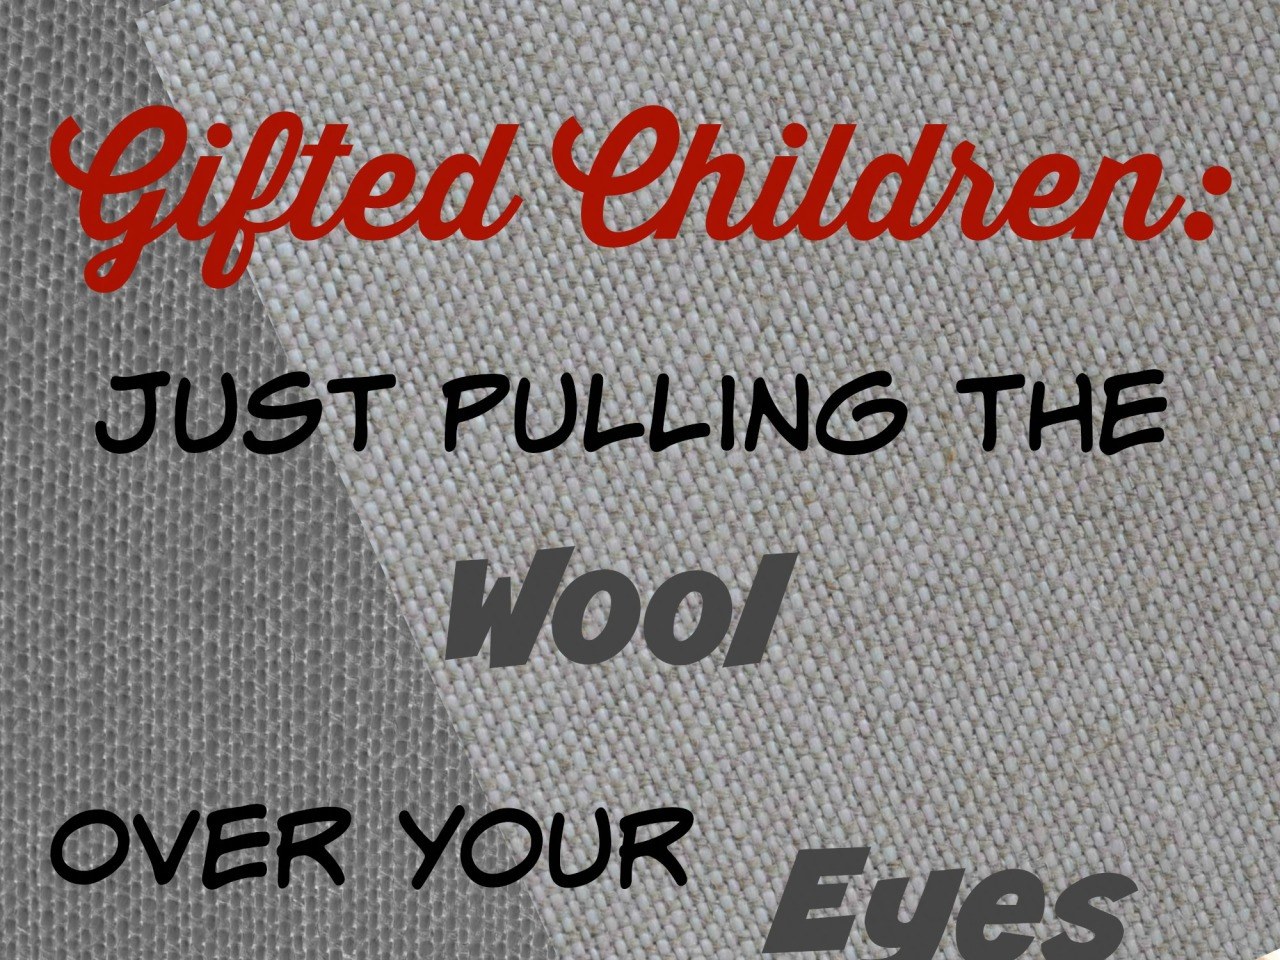 Gifted Children Just Pulling the Wool Over Your Eyes